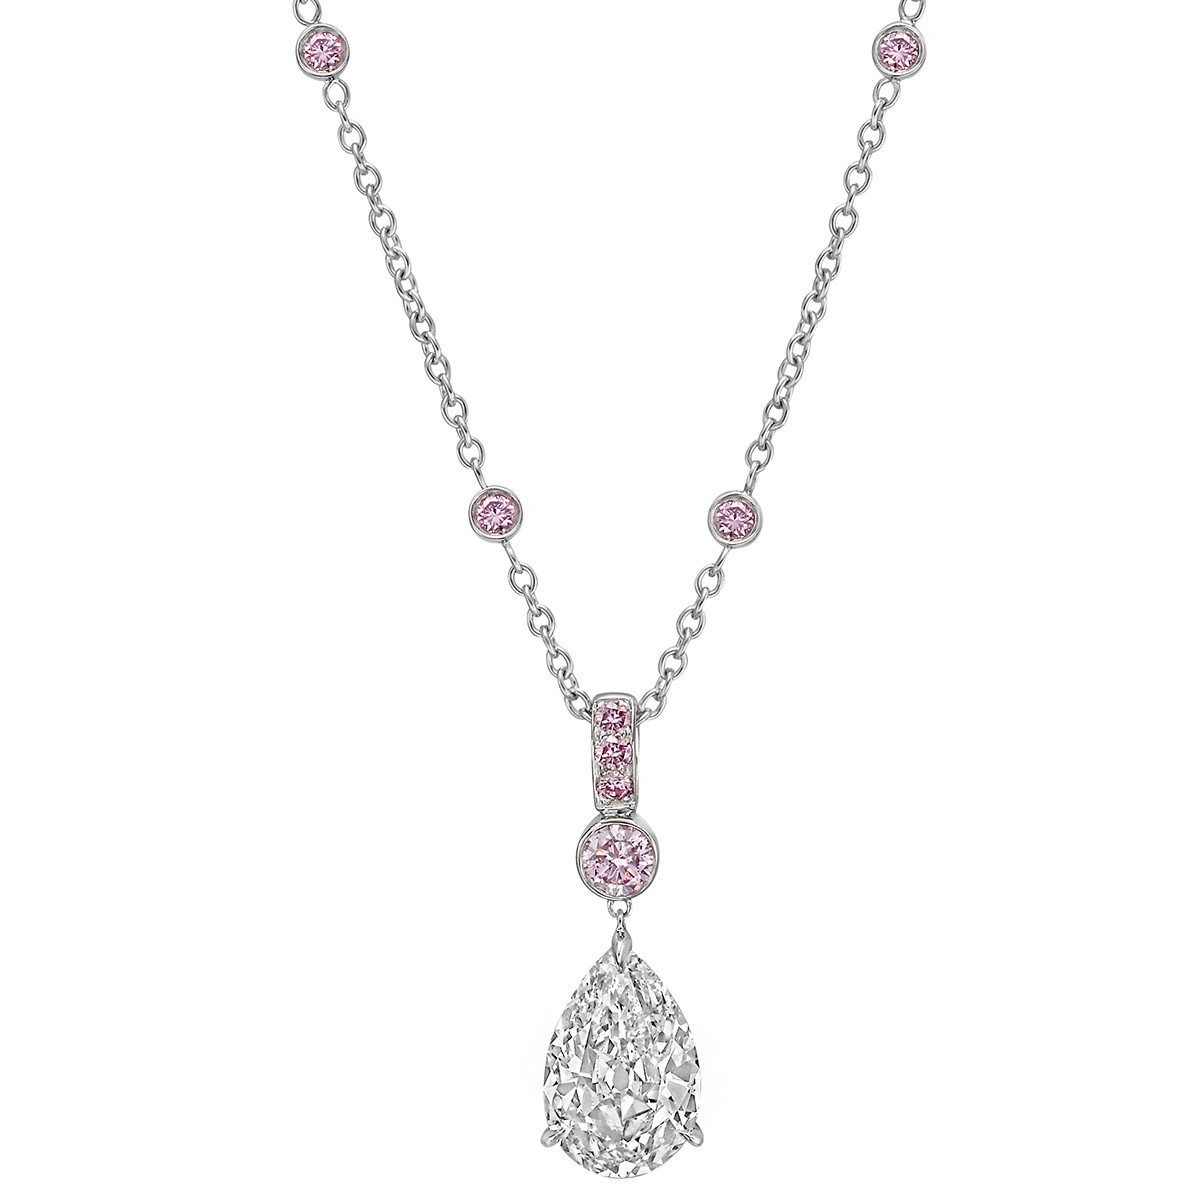 3.52ct Pear-Shaped Diamond Pendant Necklace